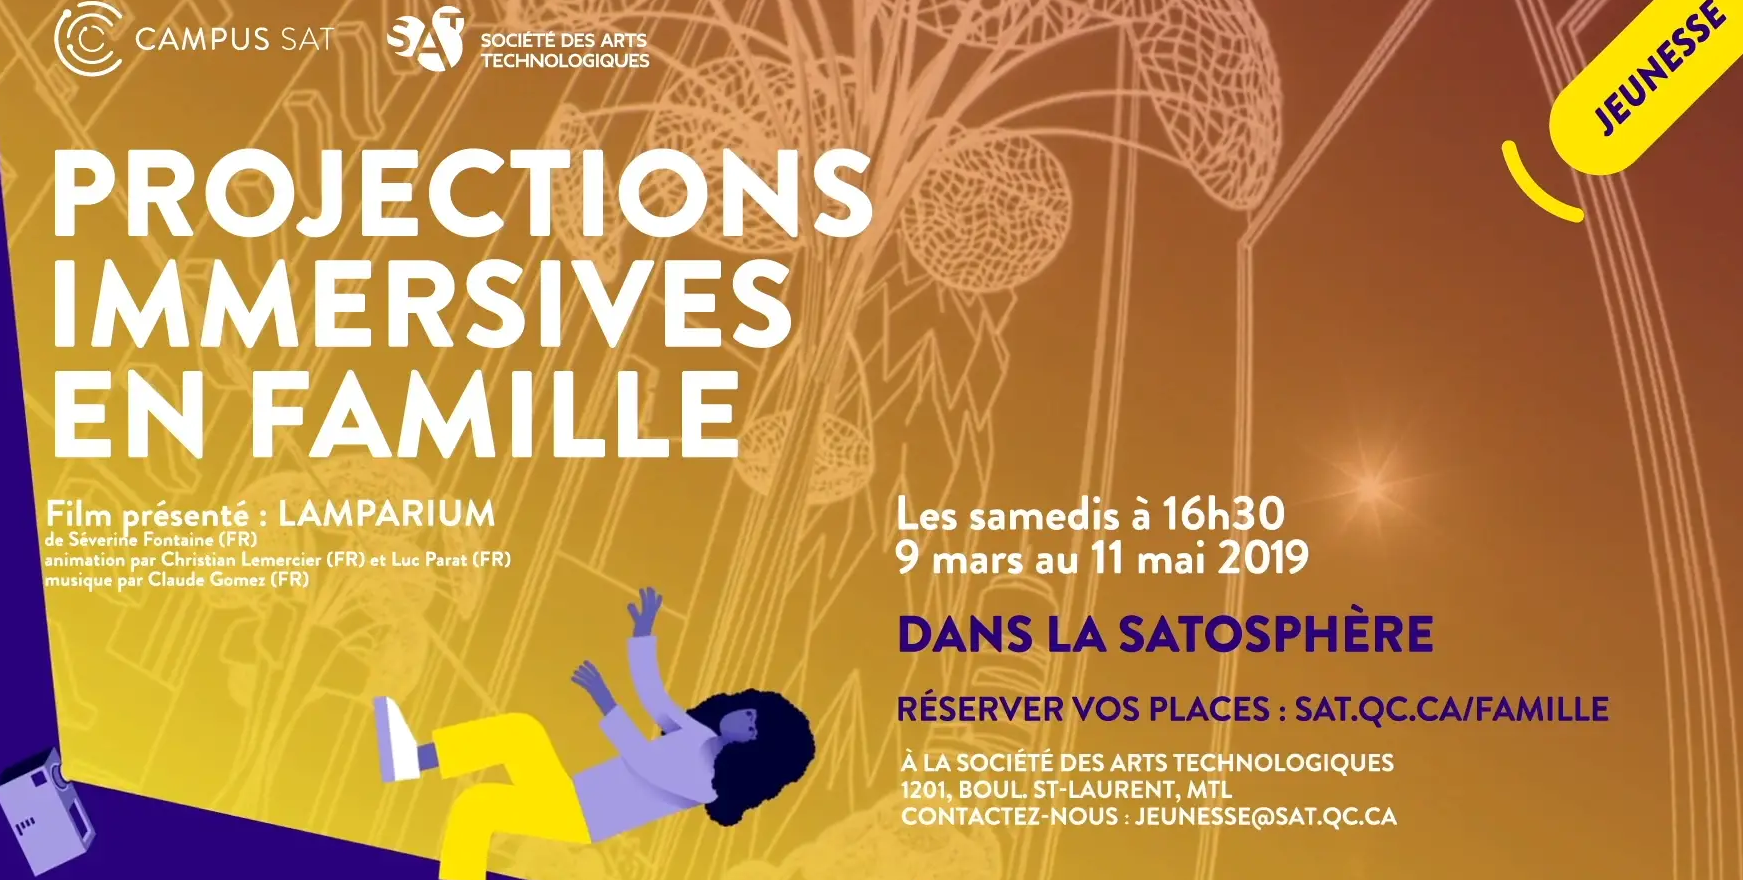 PROJECTIONS IMMERSIVES EN FAMILLE – LAMPARIUM